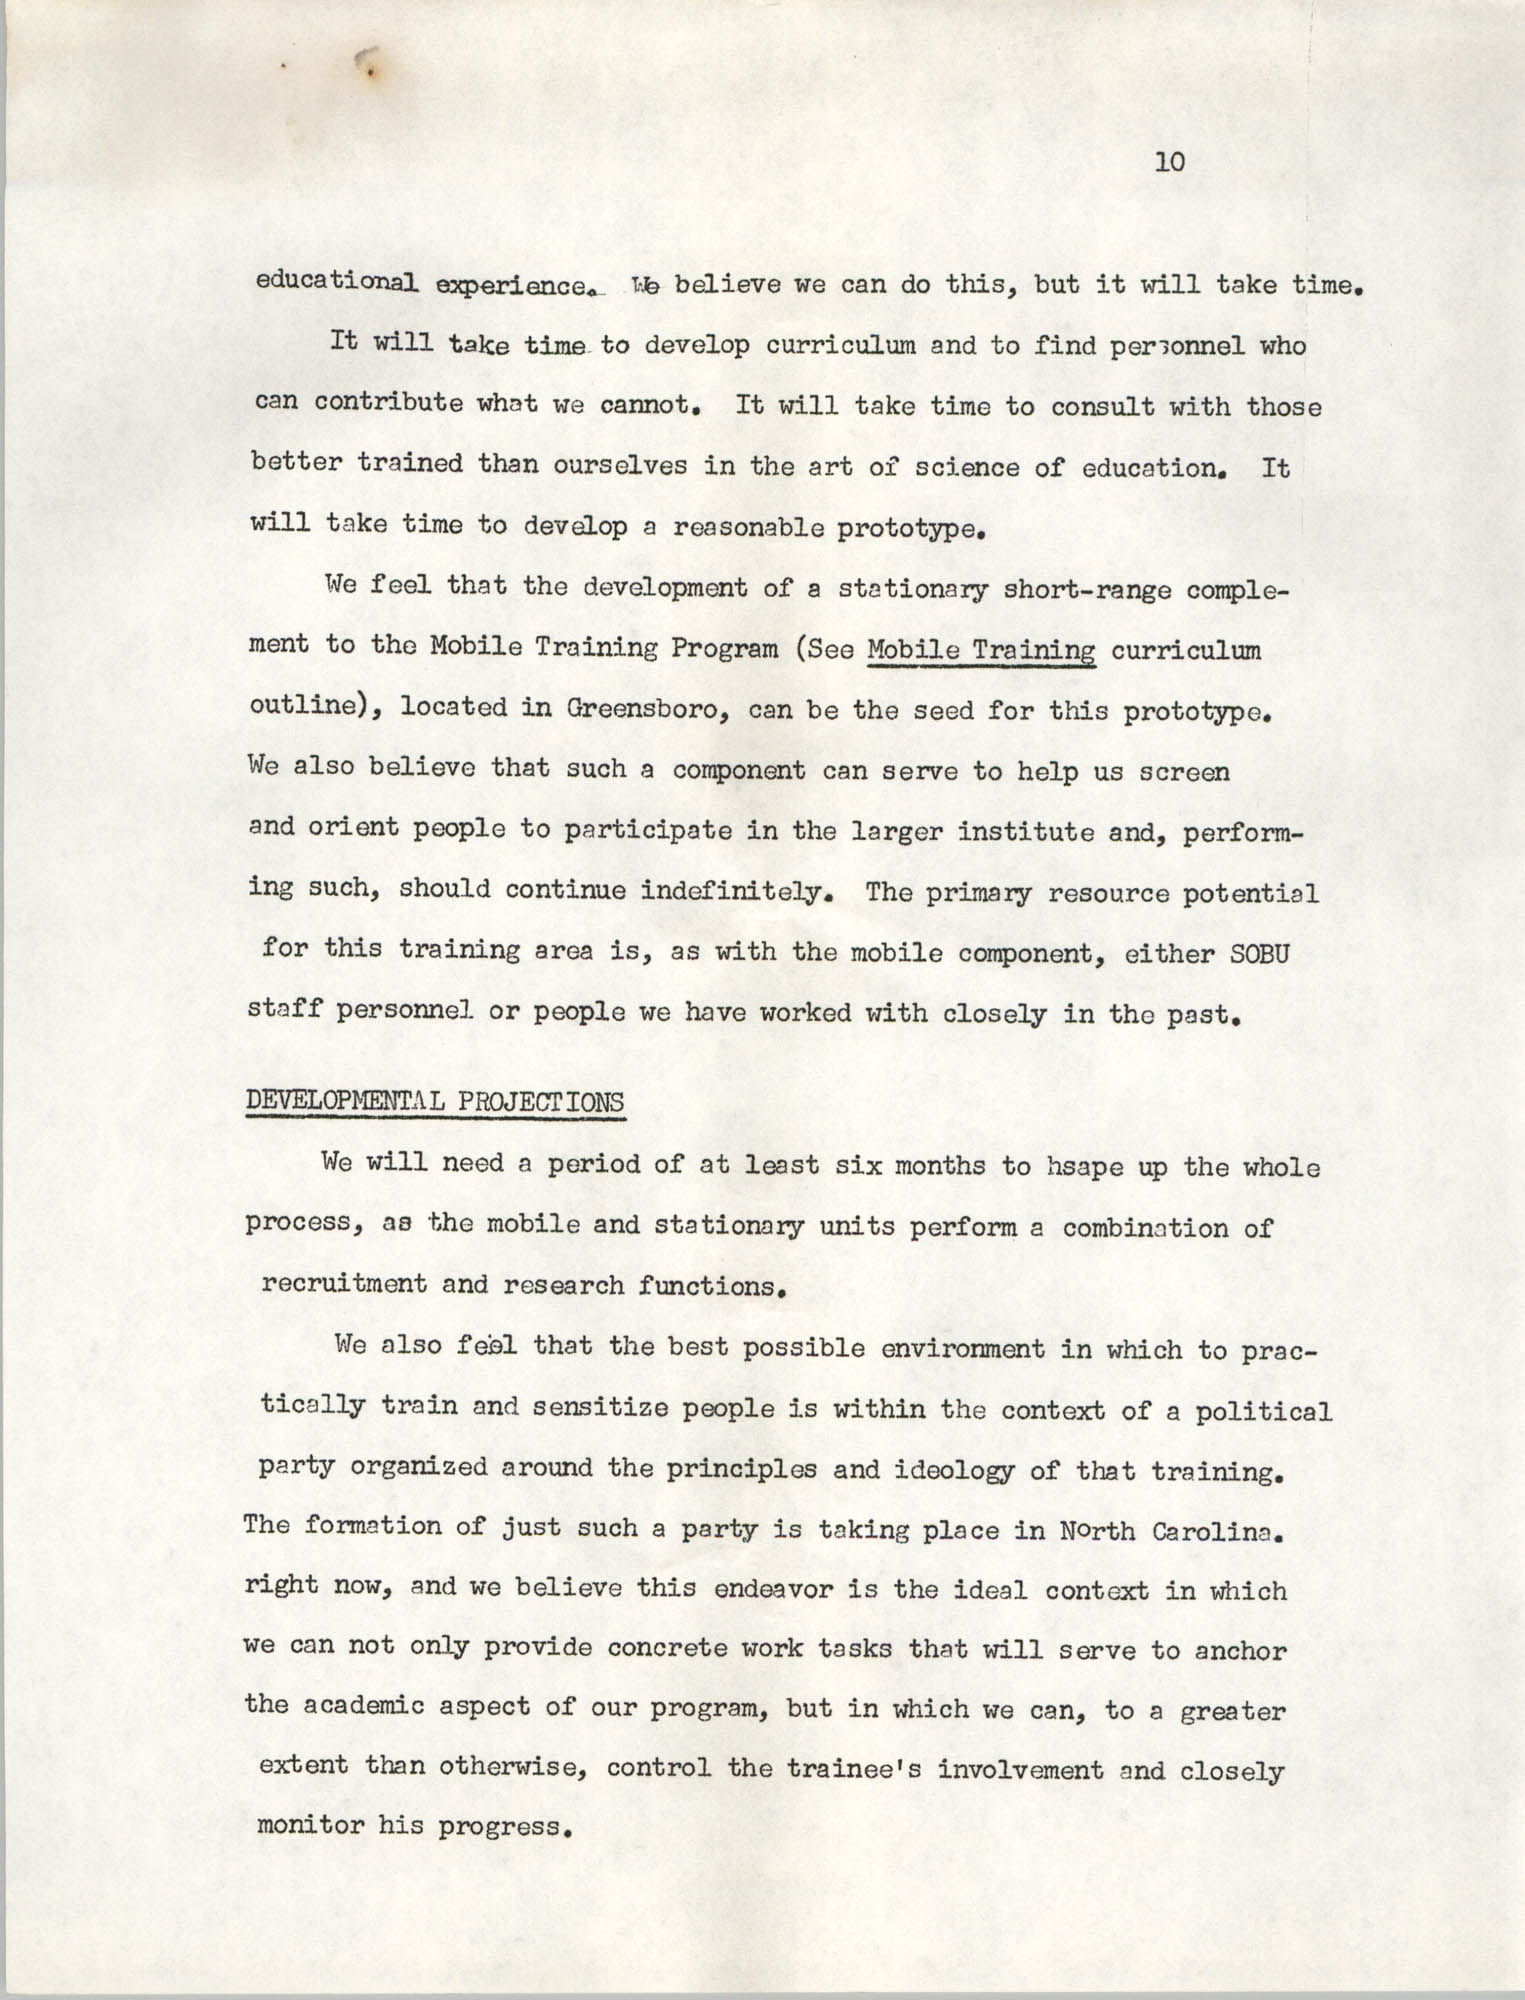 A Proposal for the Development of a Training Institute, Page 10